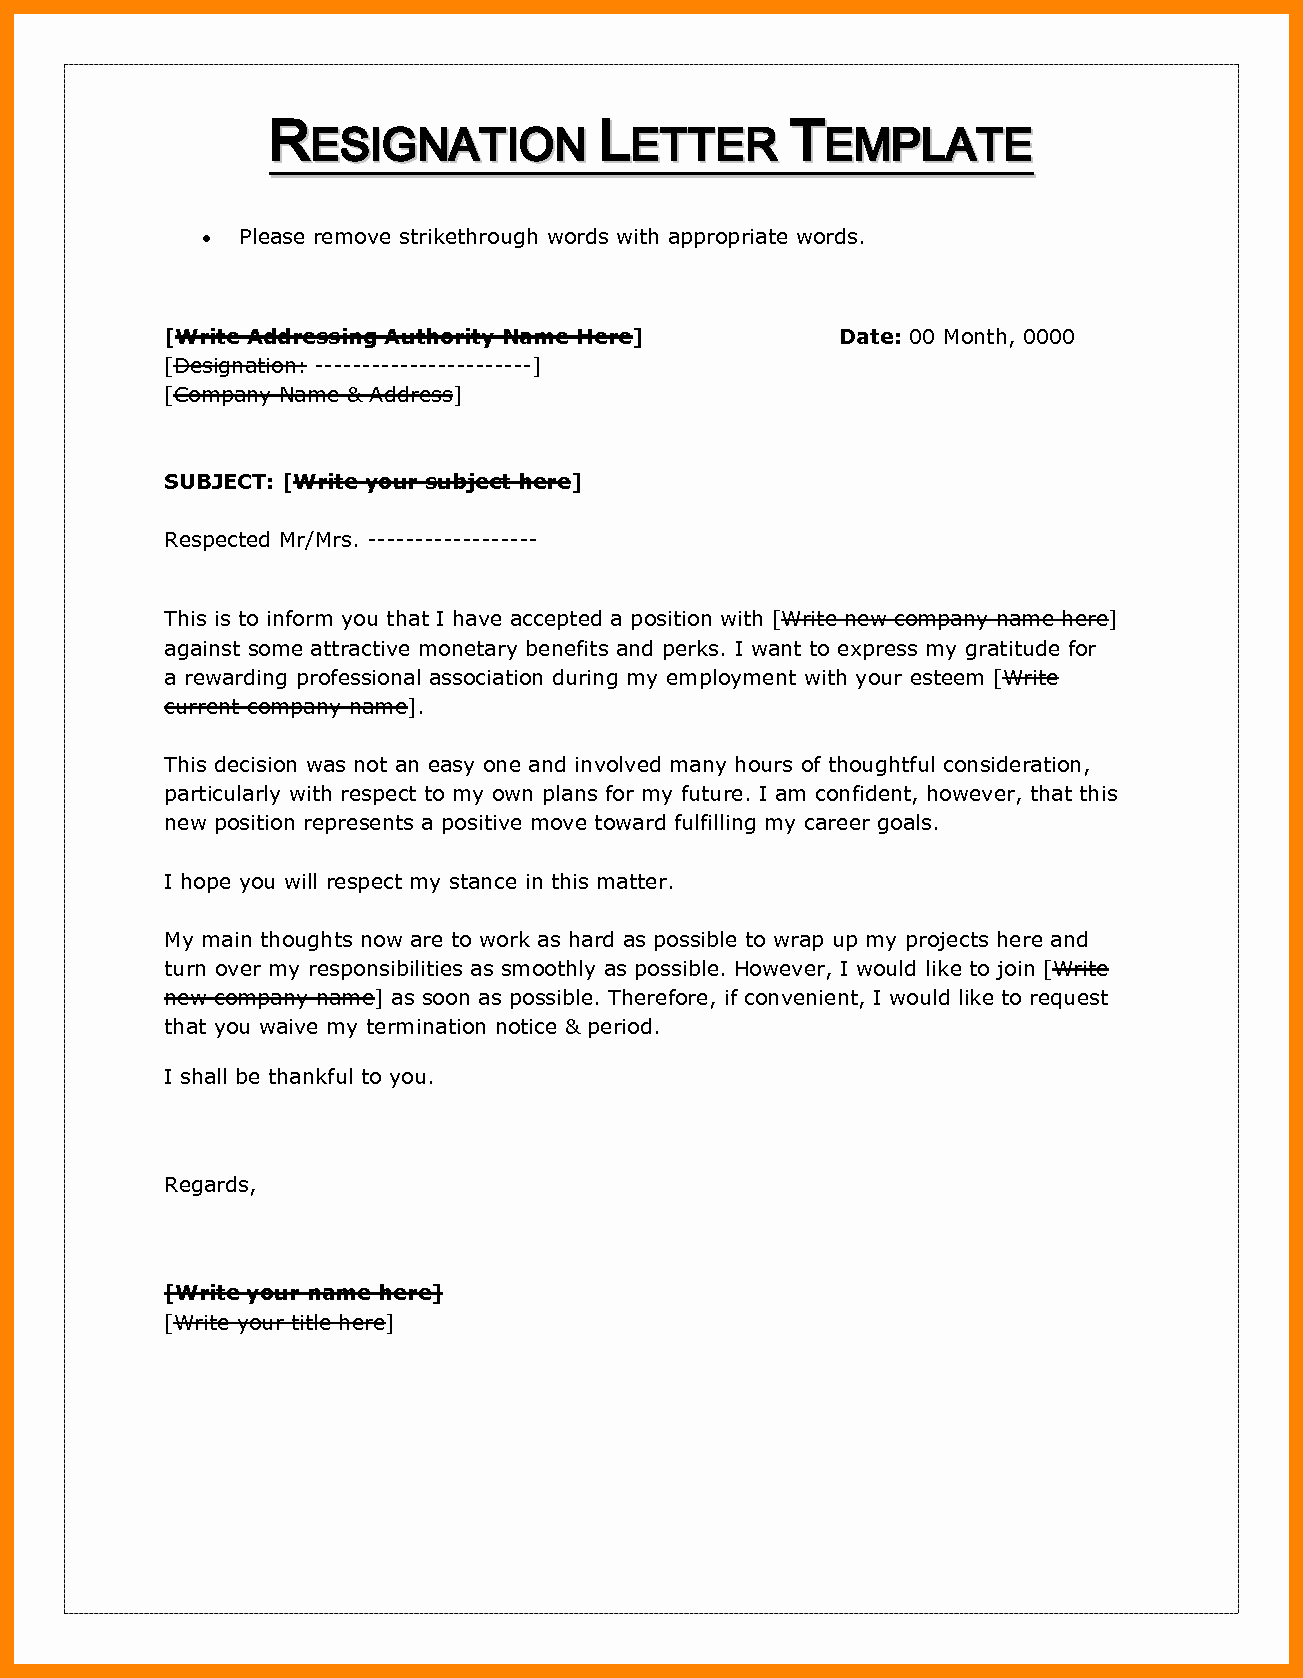 Letter Of Resignation Template Microsoft Inspirational 10 Letter Of Resignation Word Template